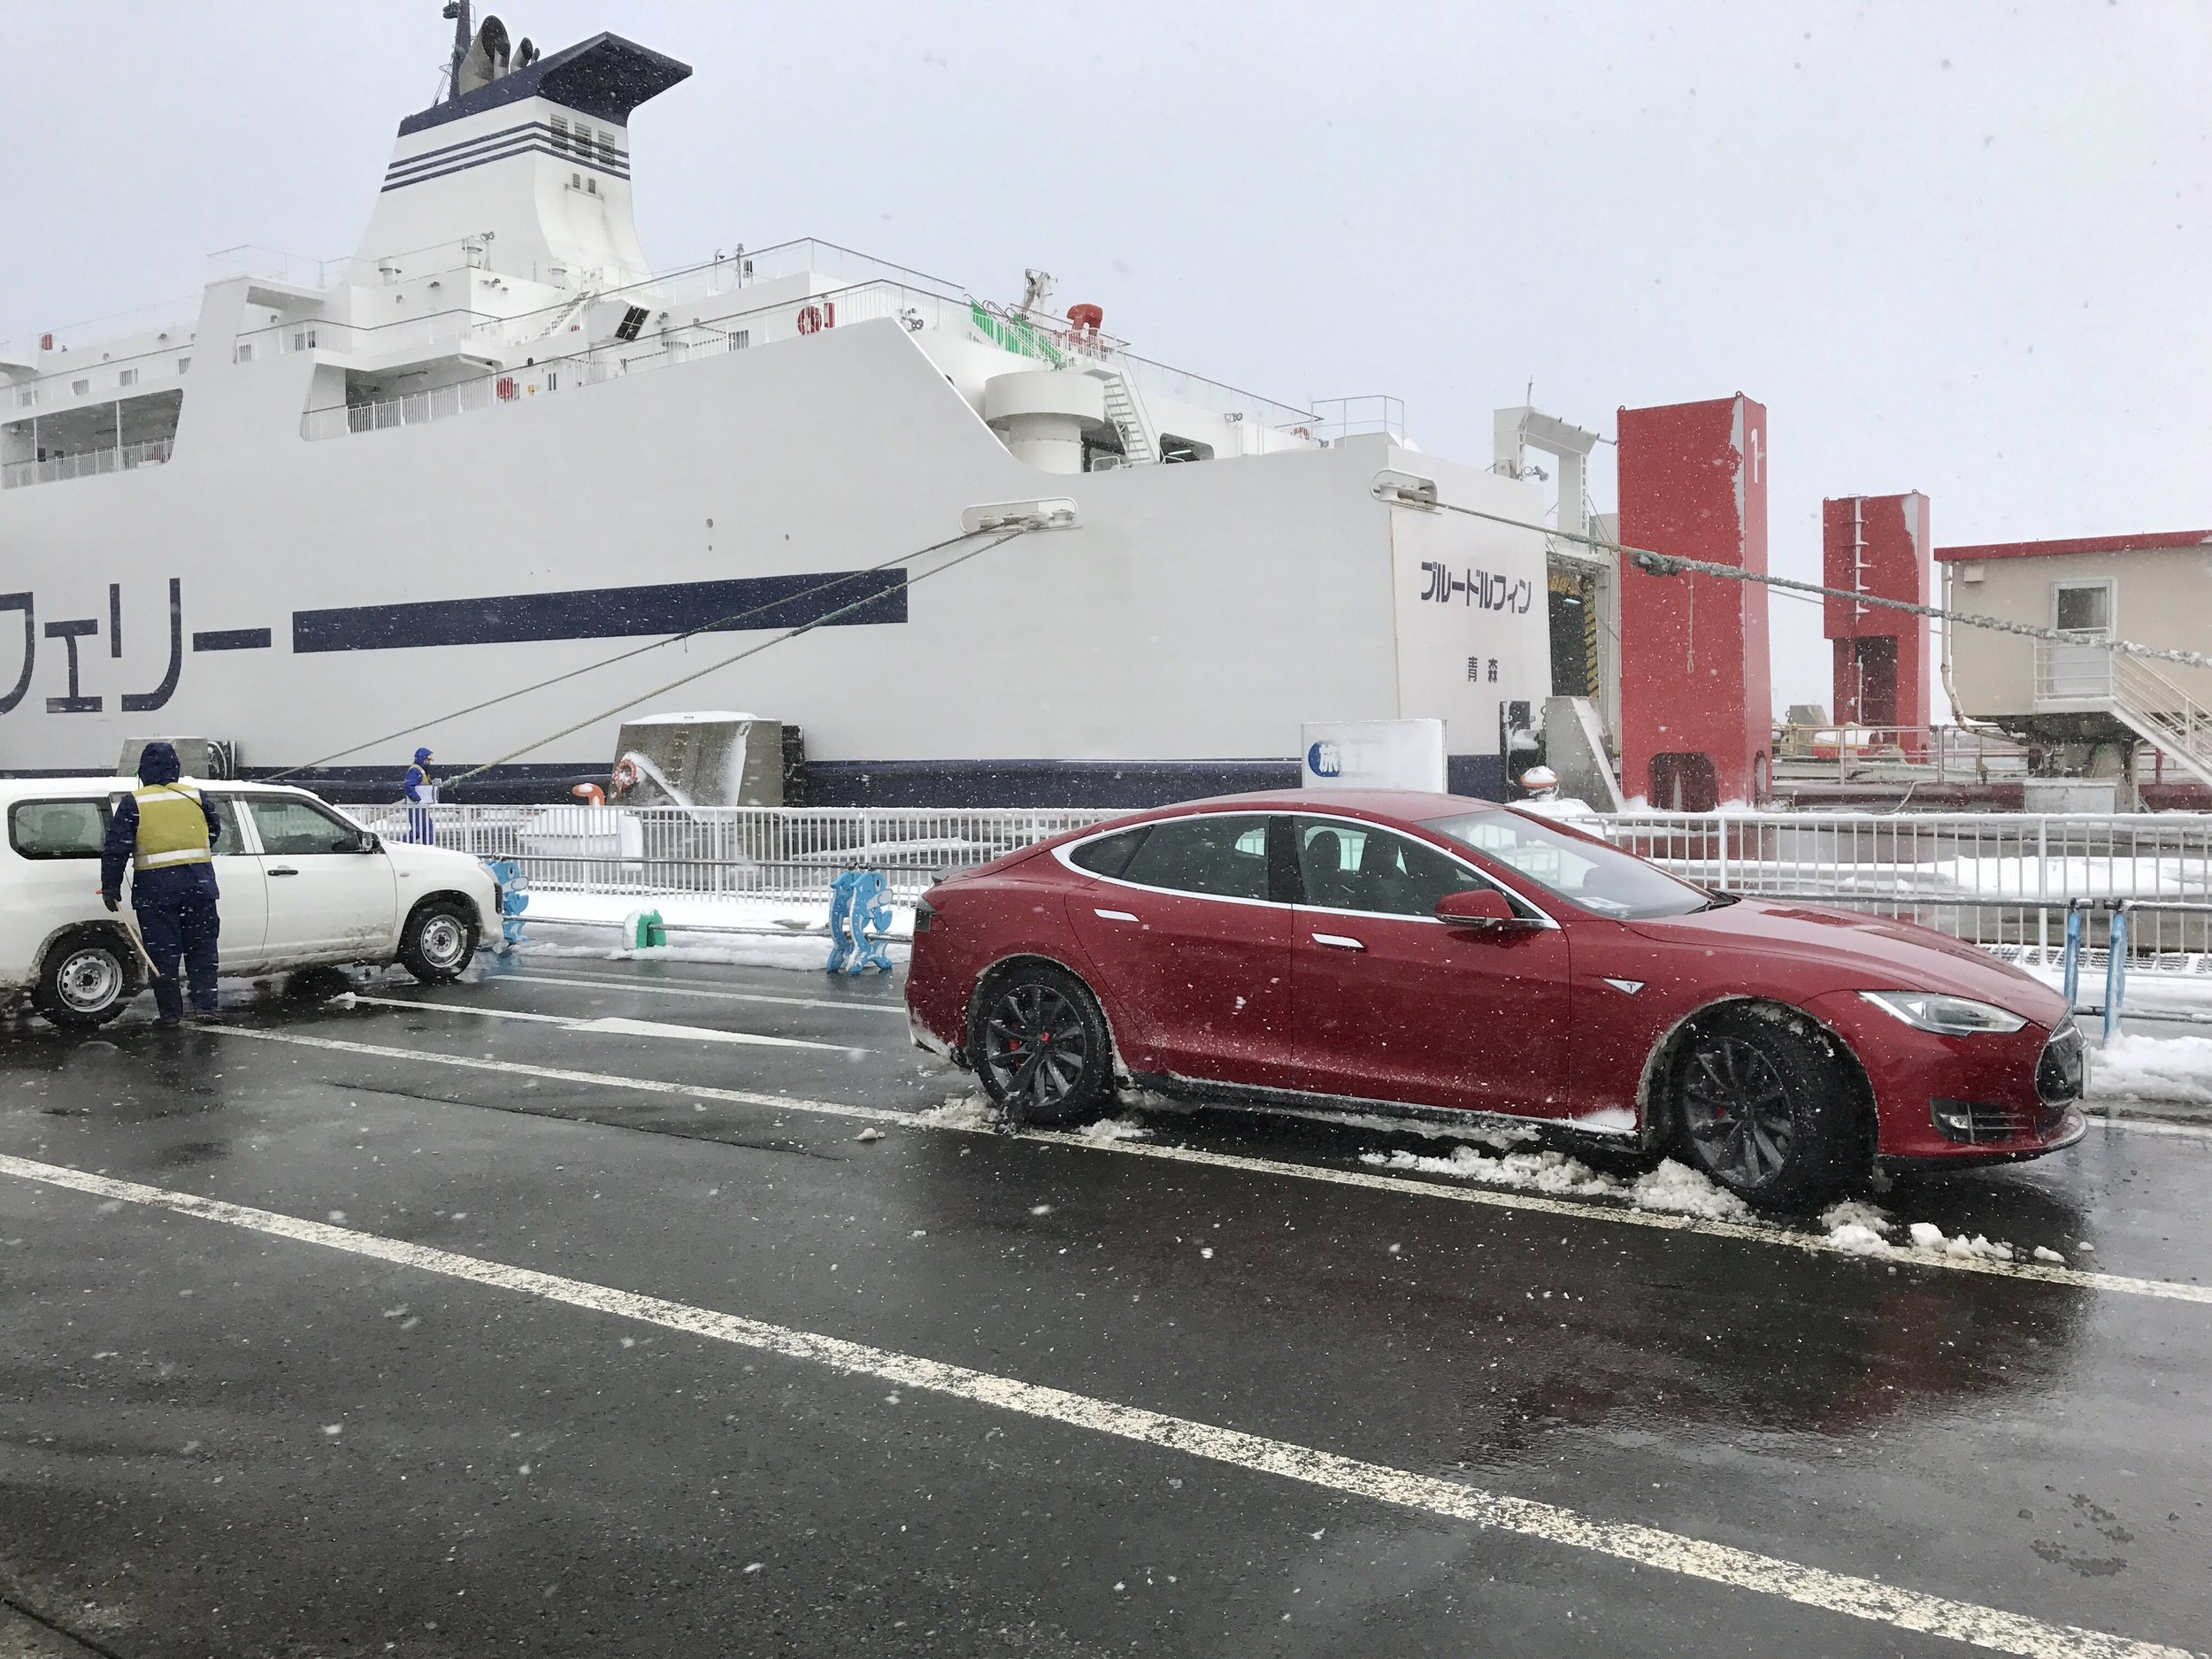 The car (after some work with a plastic shovel) and the ferry